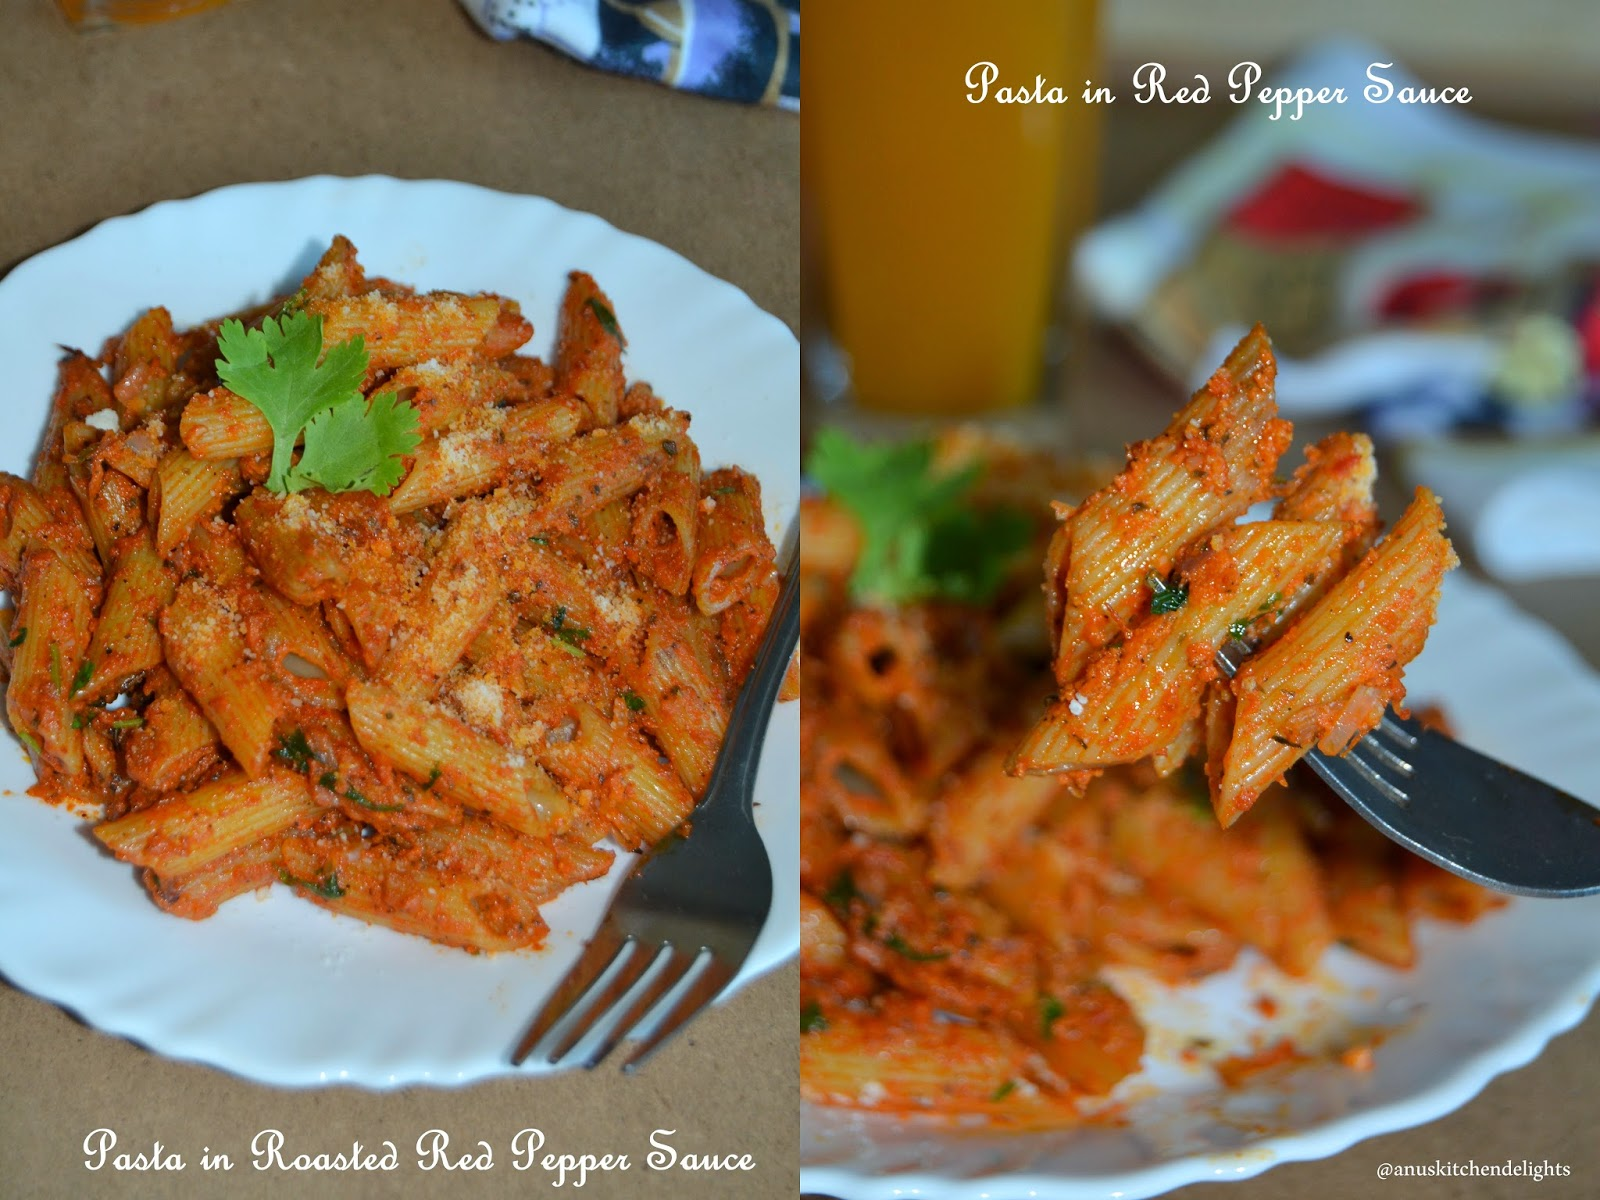 Pasta in Roasted red pepper sauce